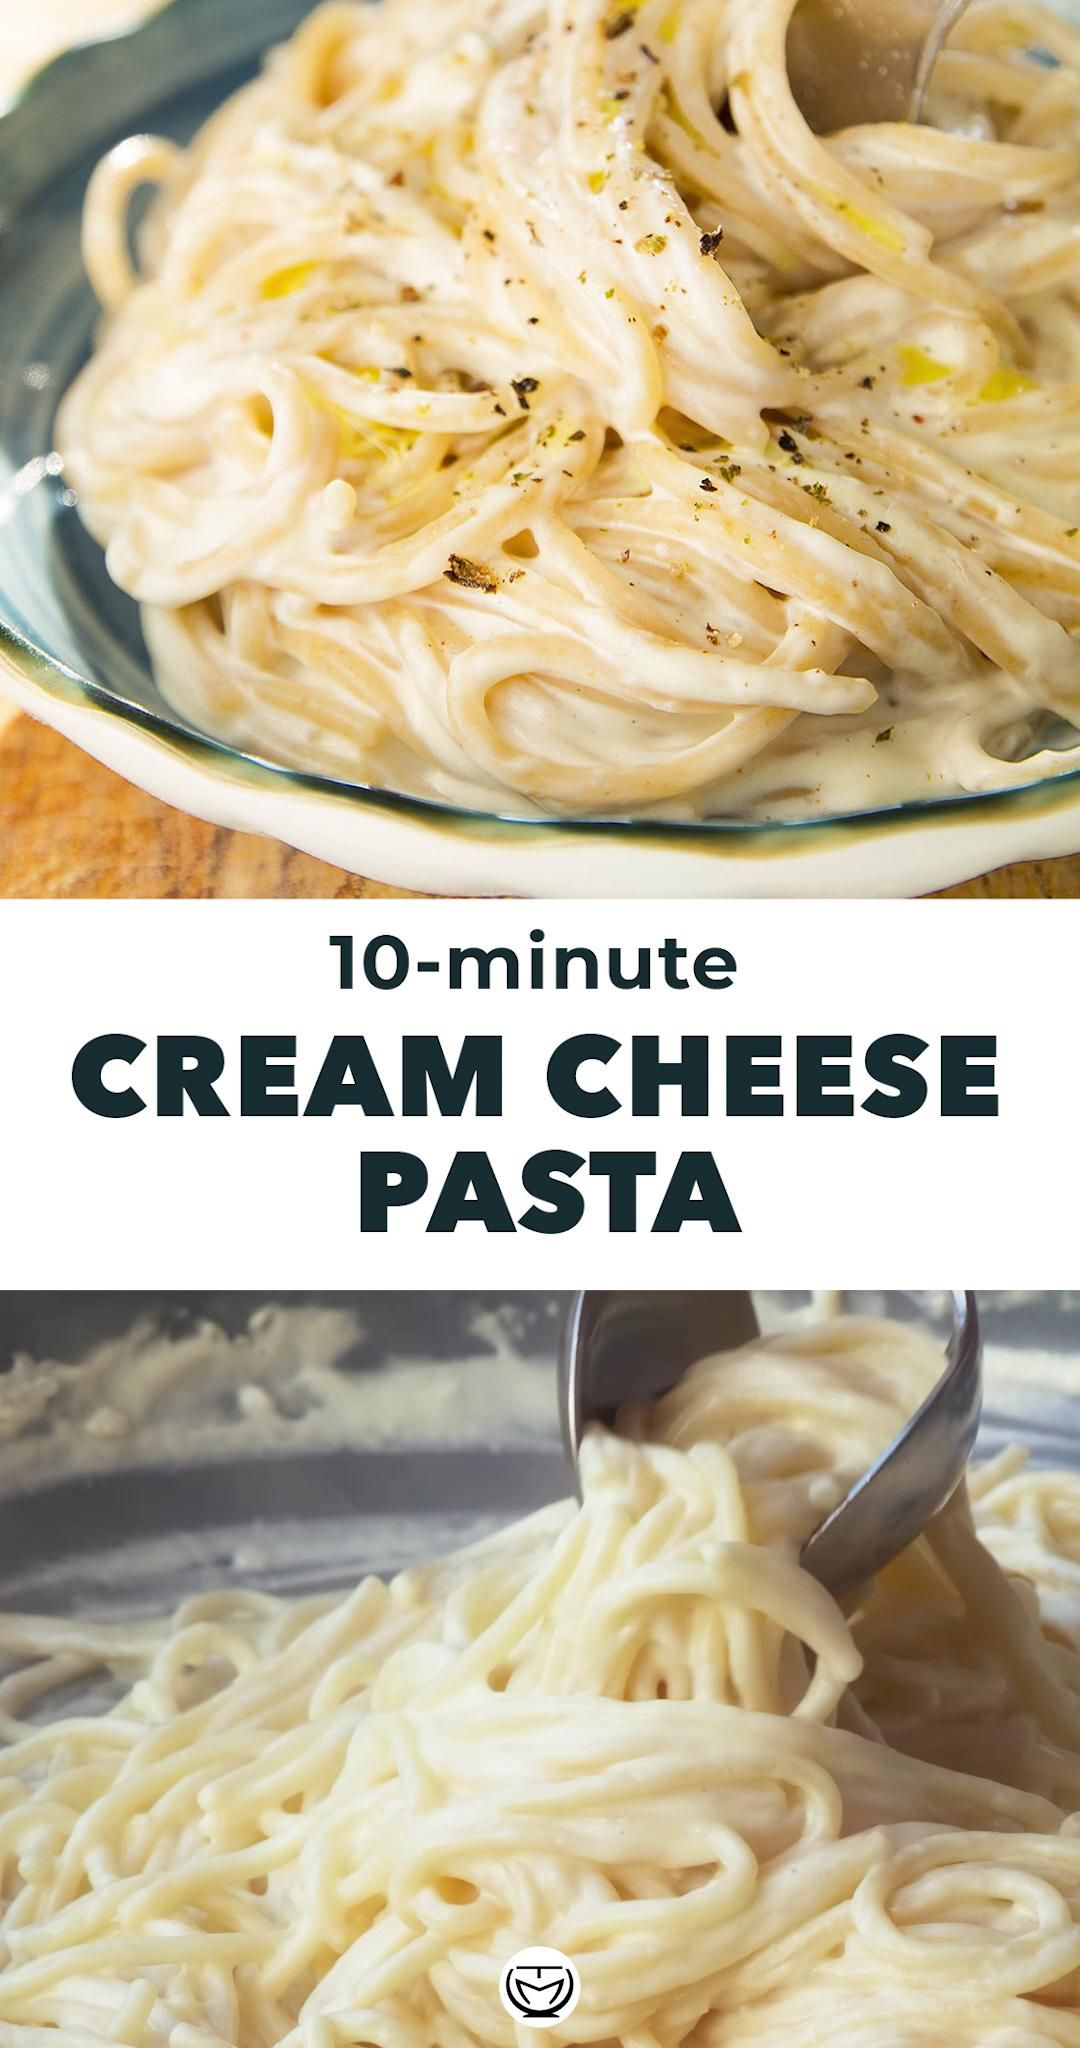 10-Minute Cream Cheese Pasta